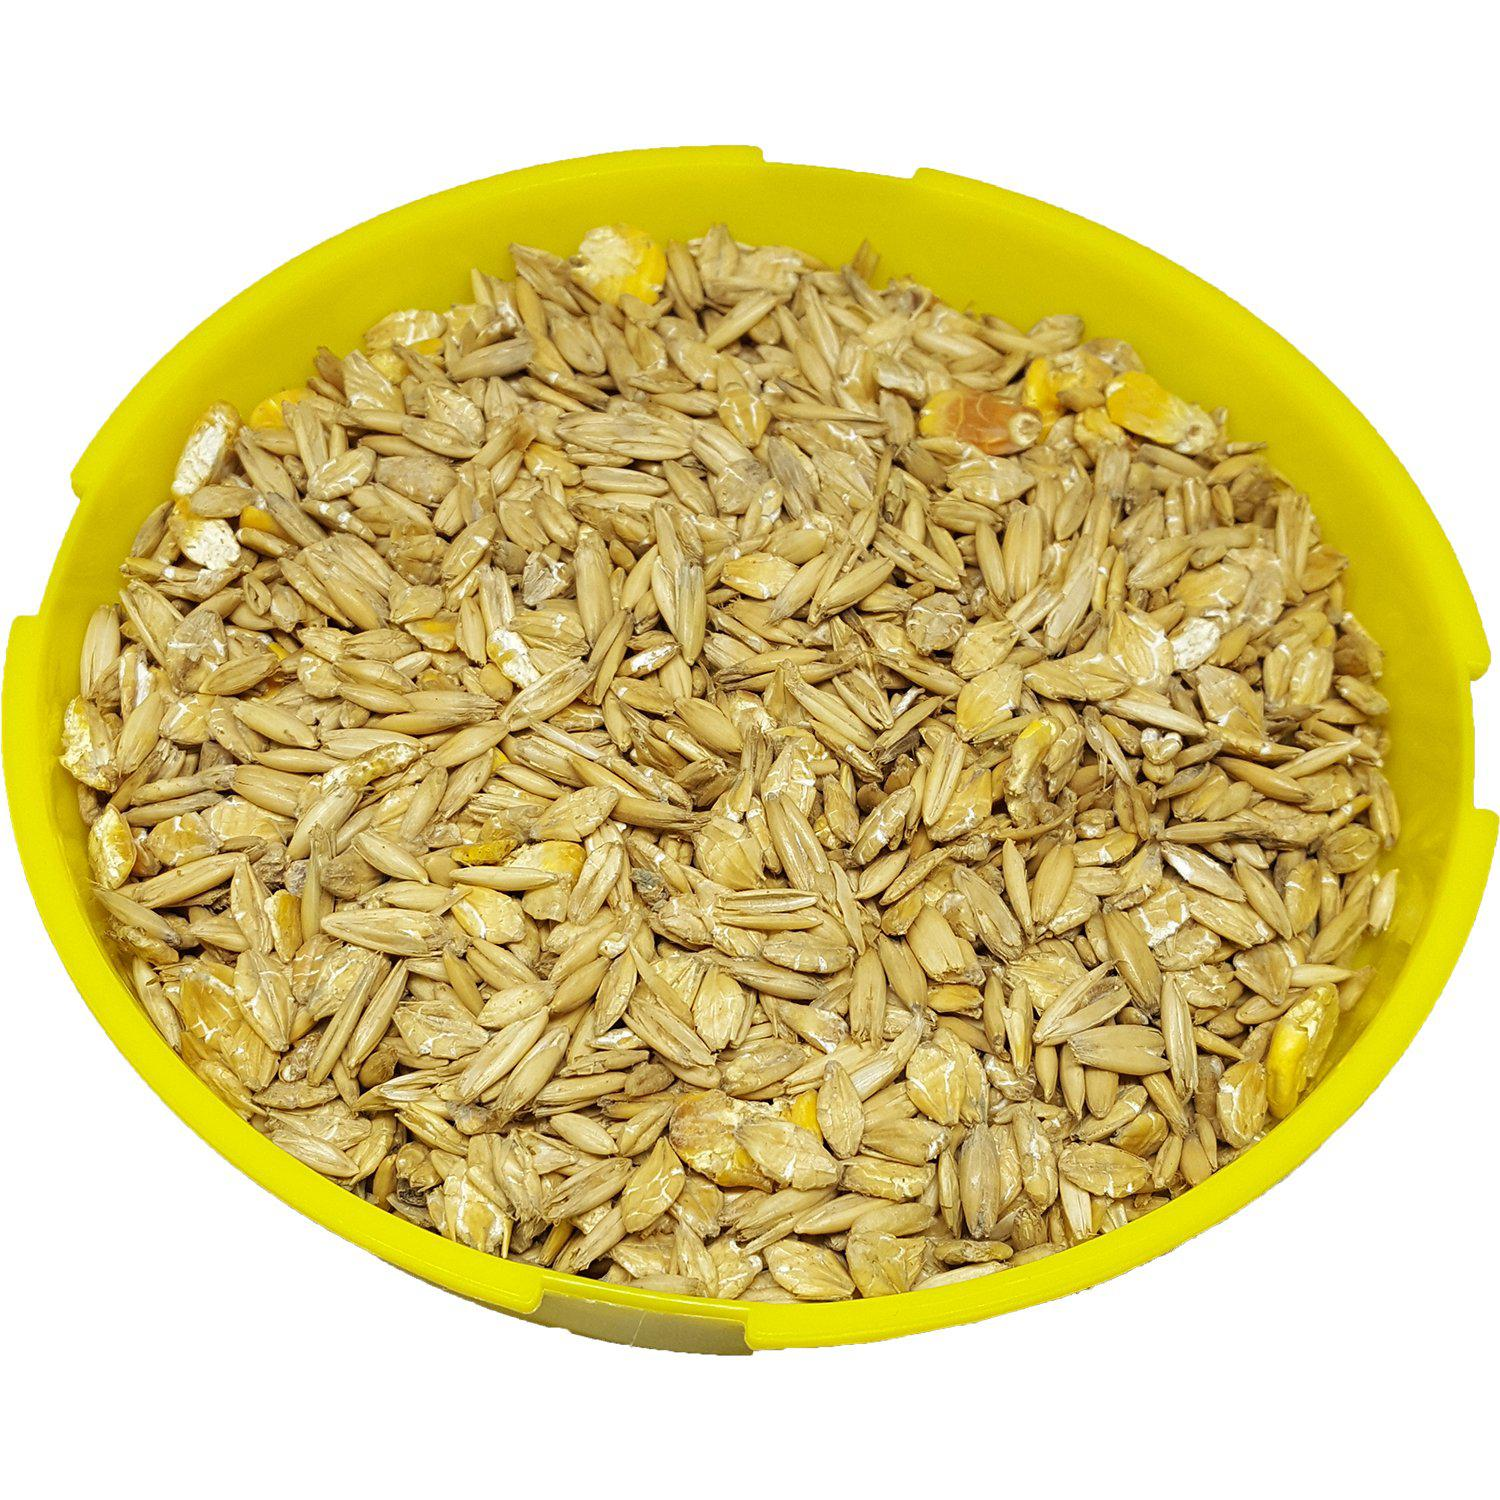 Shur-Gain® Oats 58%/Barley 30%/Corn 10%/Molasses 2% - 20 KG Bag - Critter Country Supply Ltd.